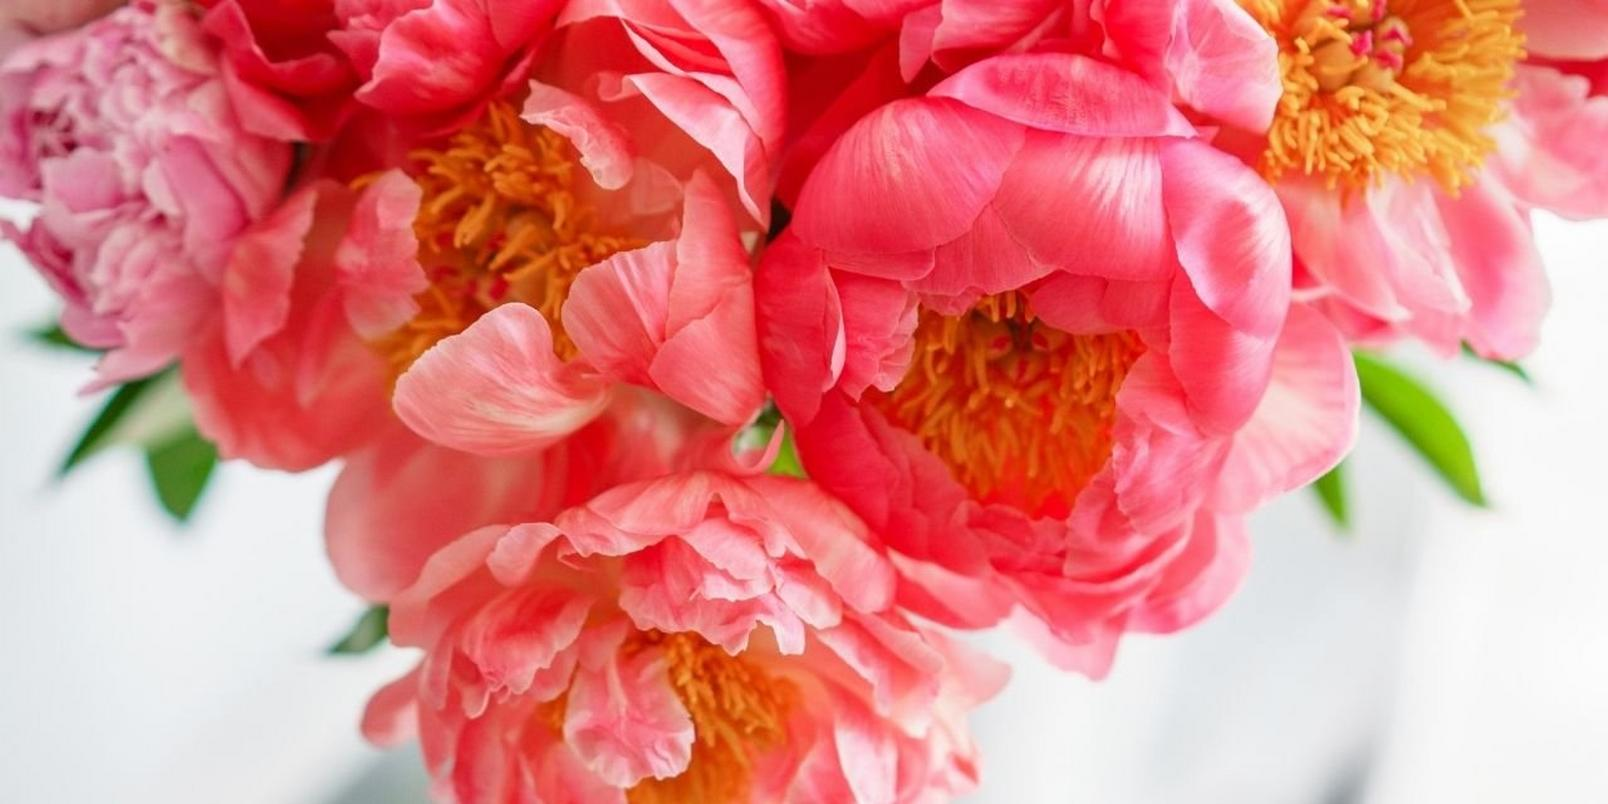 peonies-facts-that-may-surprise-you-6